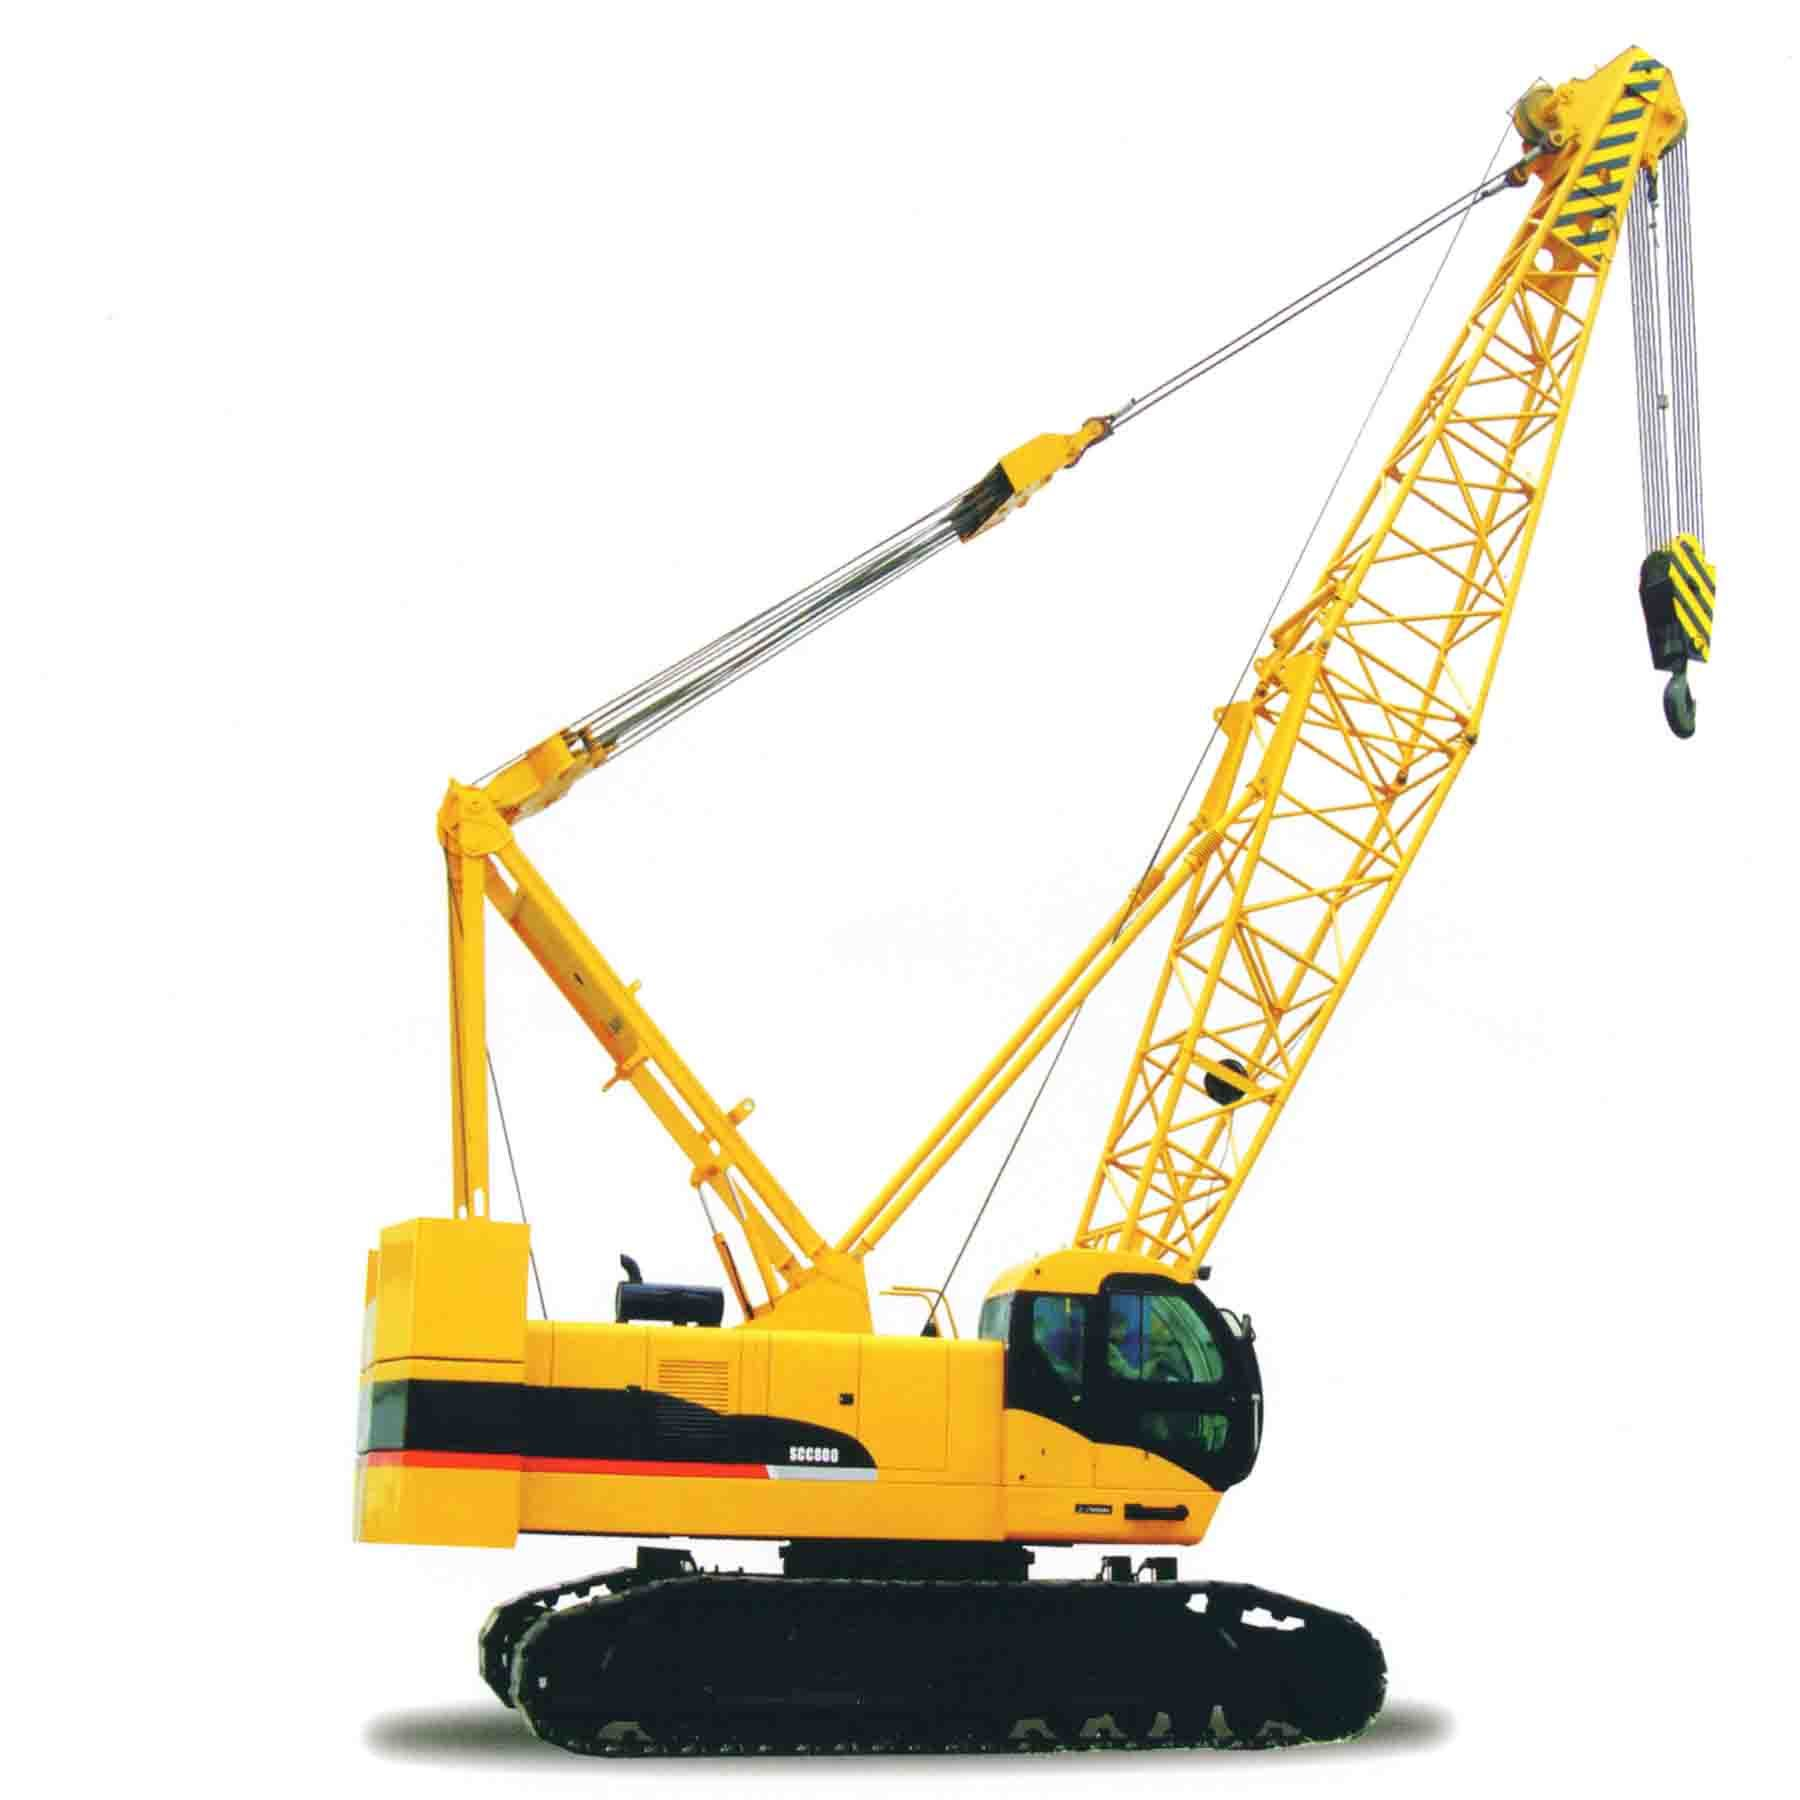 the rise of the crawler crane Kobelco construction machinery co, ltd kobelco construction machinery co, ltd announced the launch of new hydraulic crawler cranes with a maximum lifting capacity of 300 metric tons (330 us tons) for standard crane and 350 metric tons (385 us tons) with an shl specification.